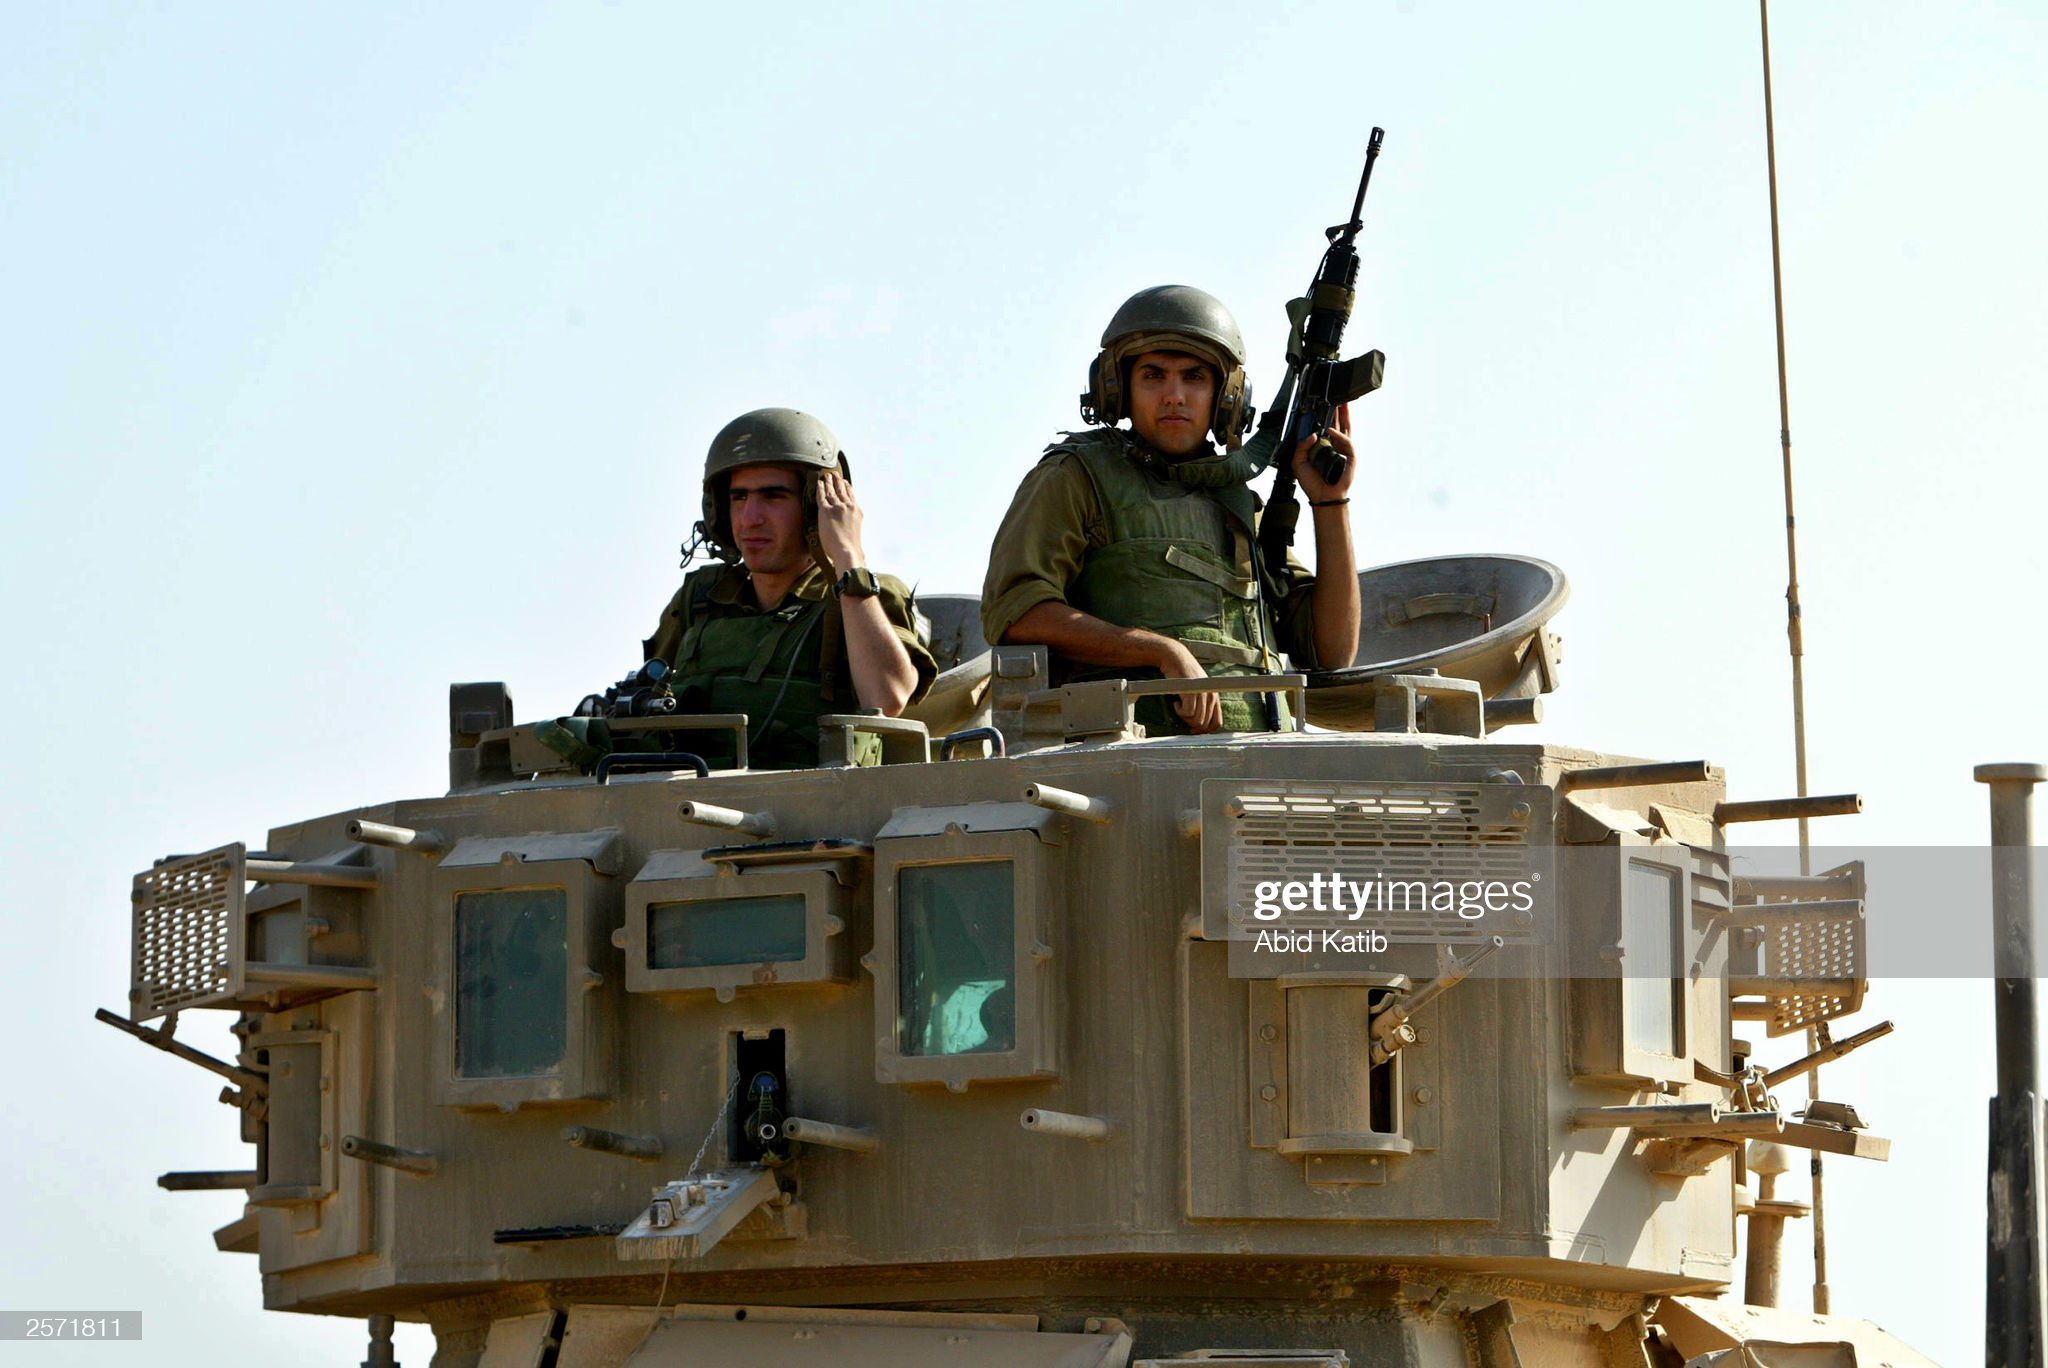 https://media.gettyimages.com/photos/israeli-soldiers-sit-in-their-tank-as-they-reblock-the-junction-on-picture-id2571811?s=2048x2048